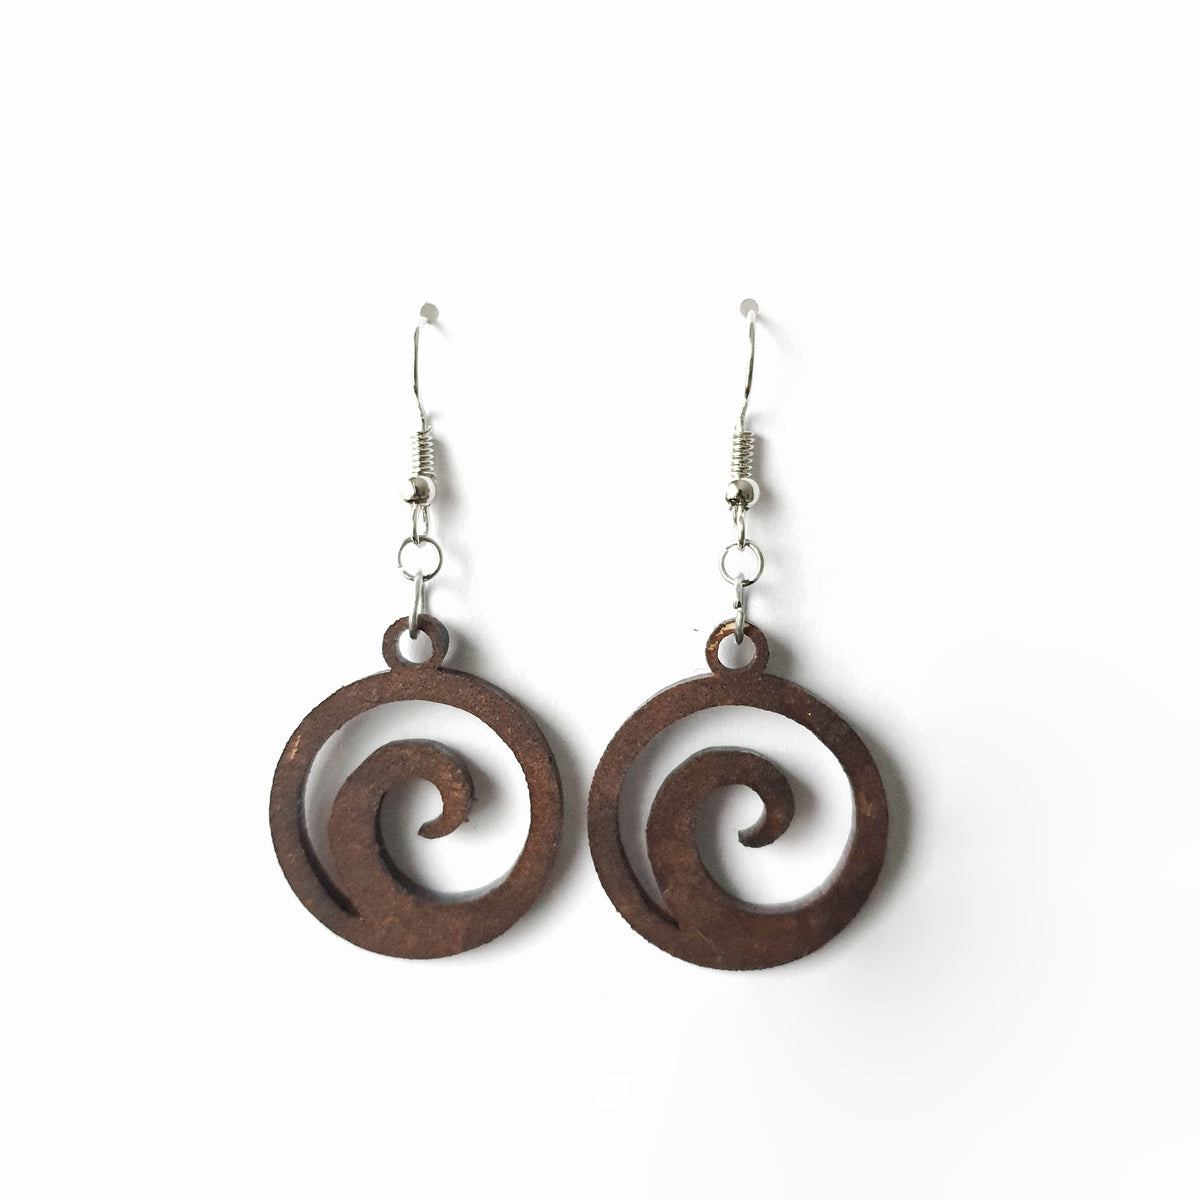 Wooden Koru Earrings